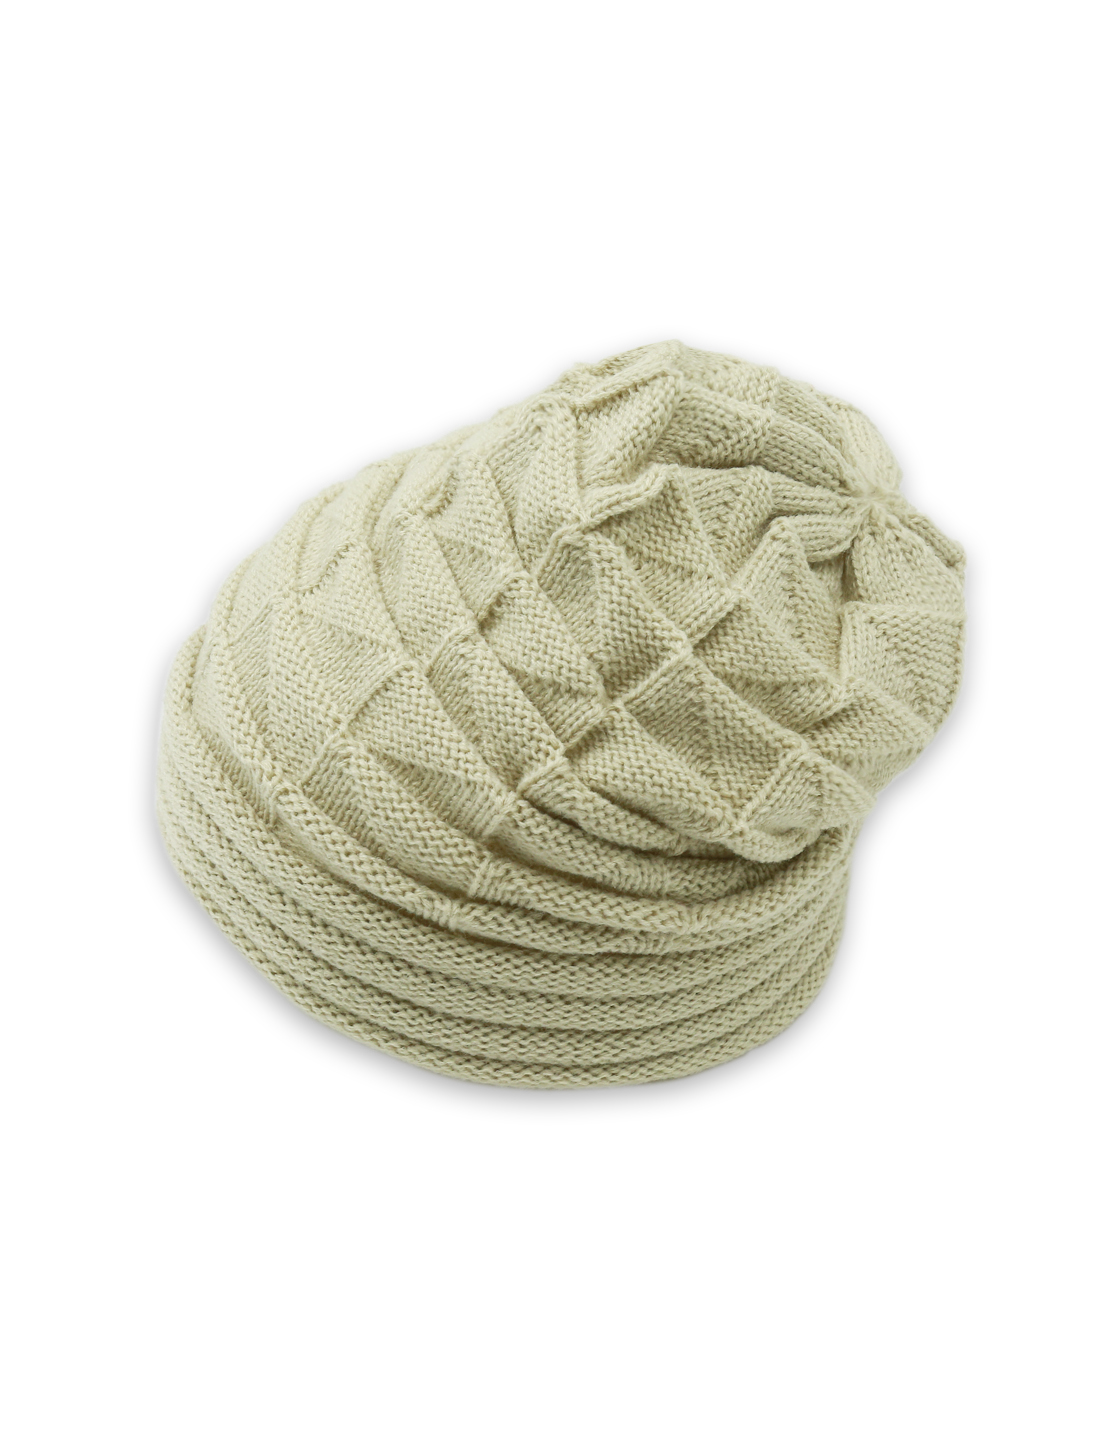 Unisex Roll Up Hem Triangle Pattern Stretchy Knit Beanie Hat Beige